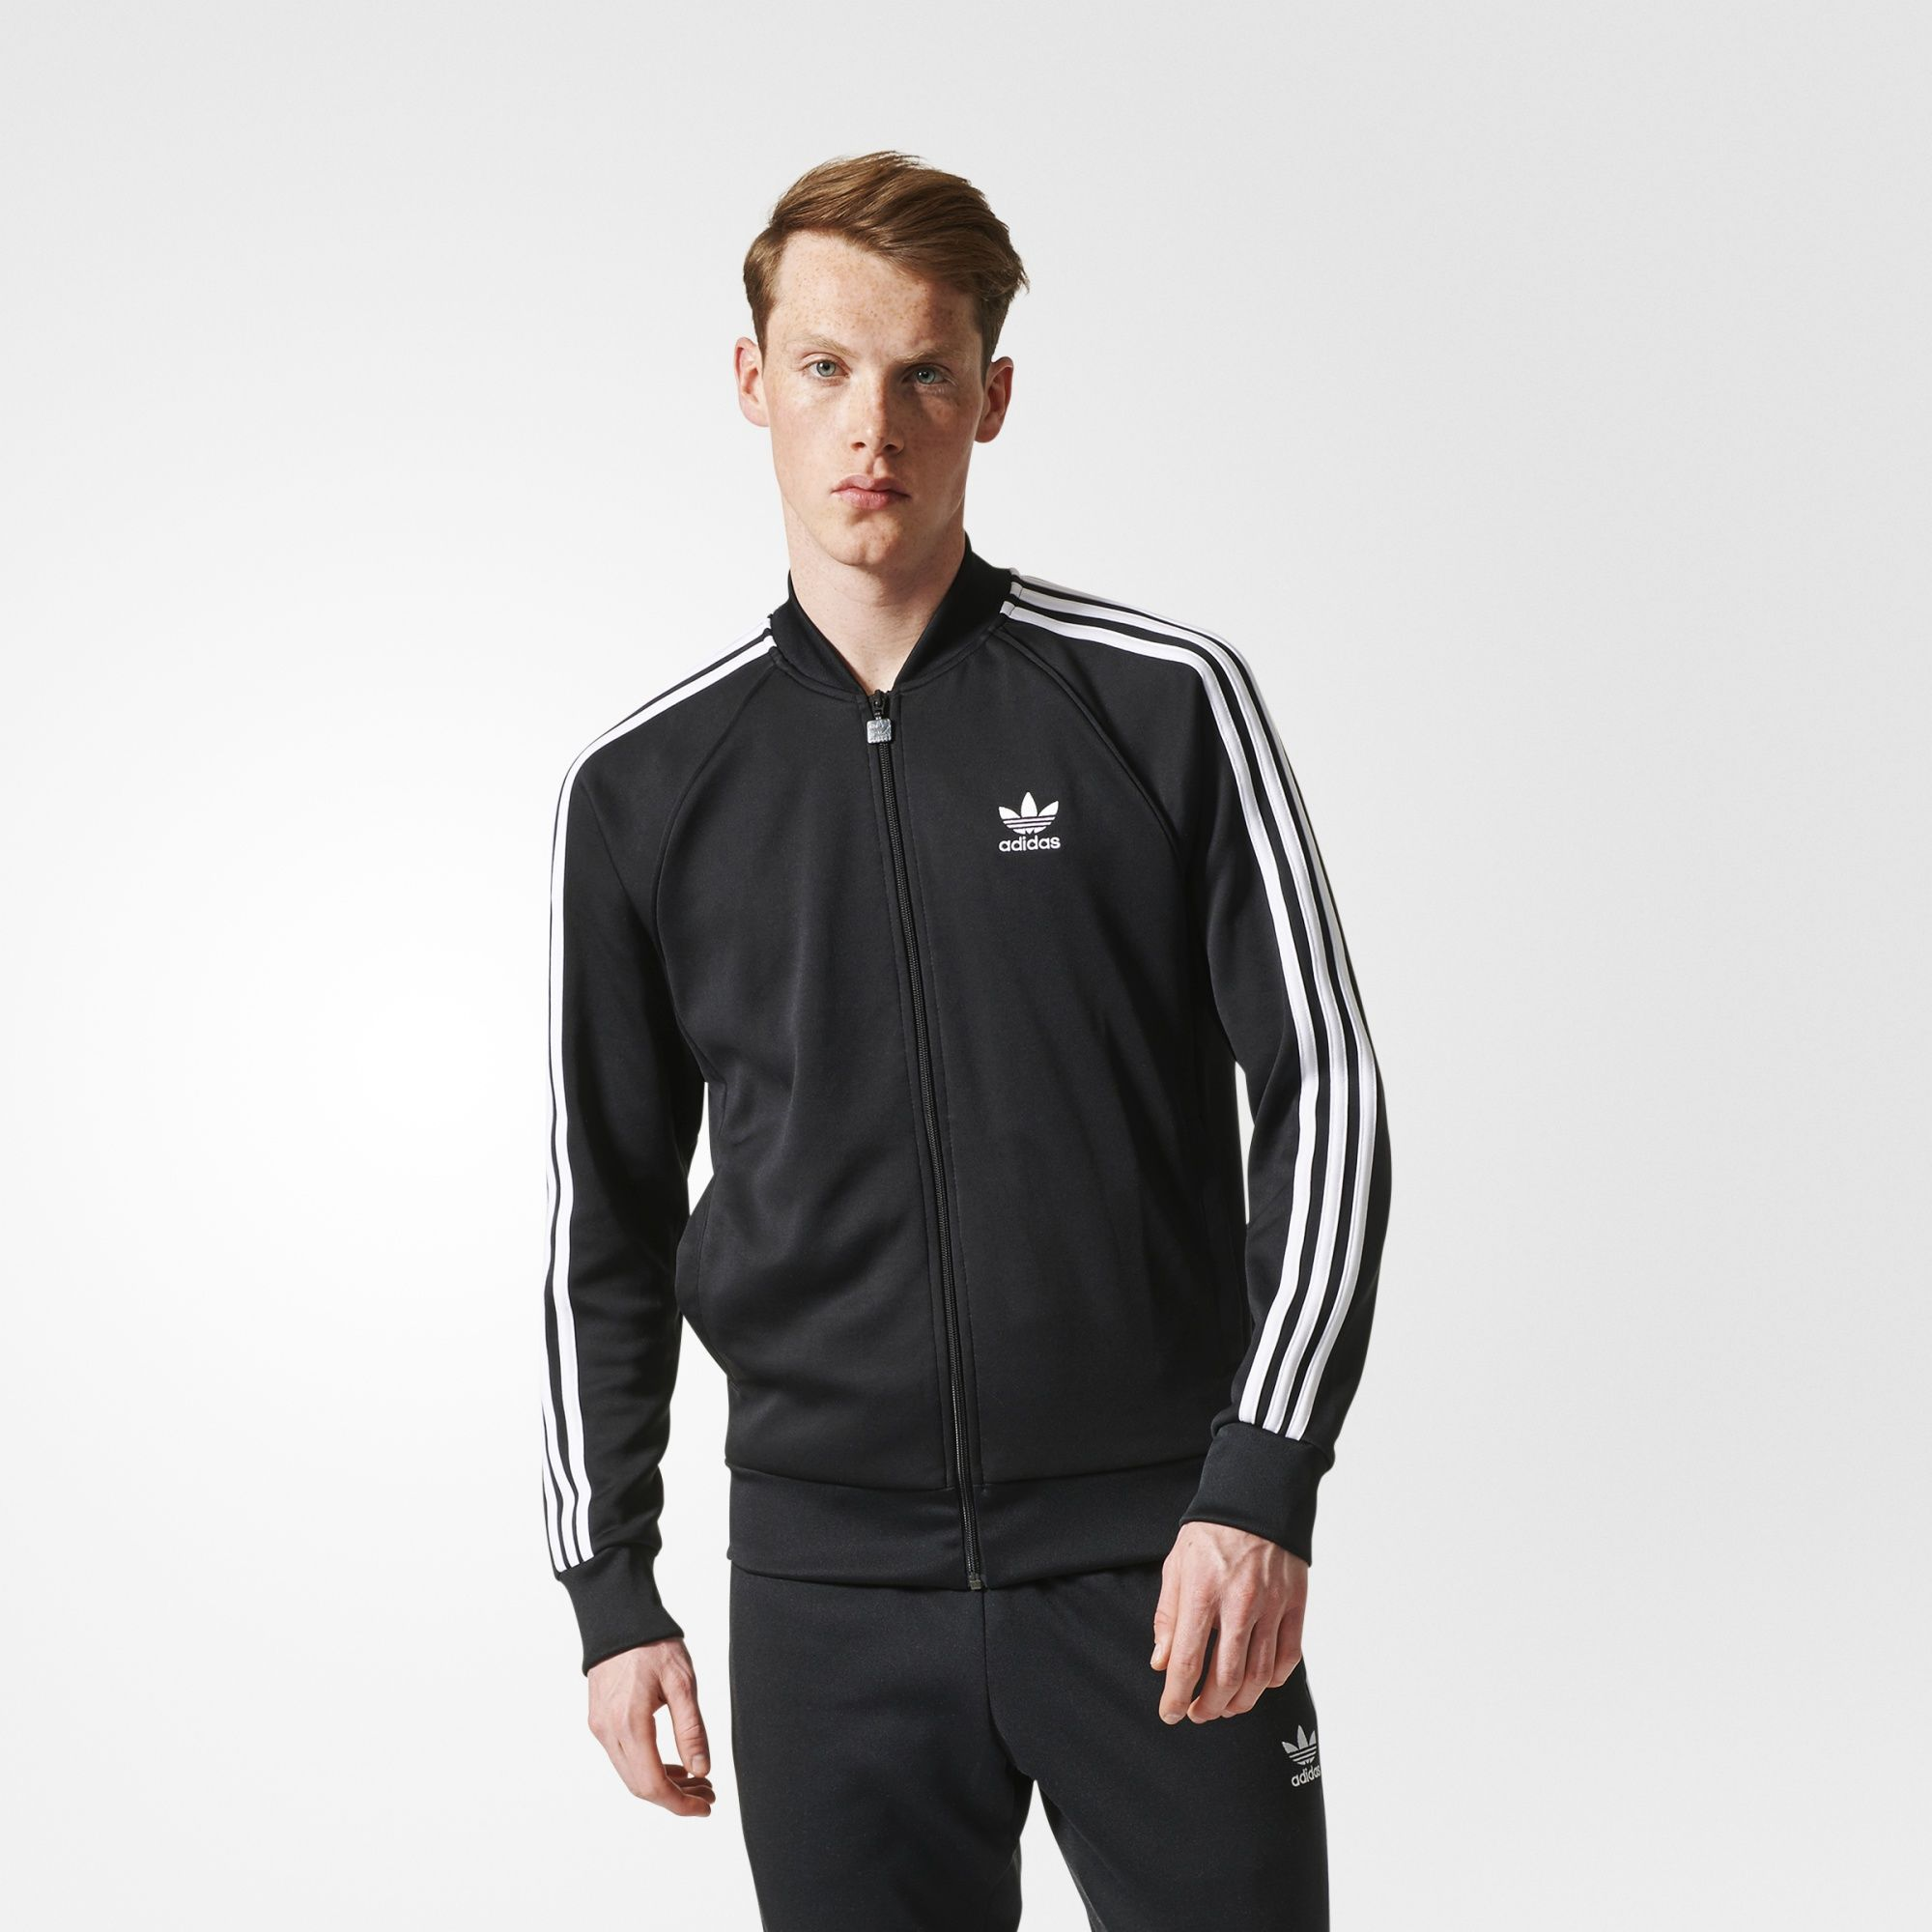 A street-style staple, this men's Superstar track jacket has all the  details of